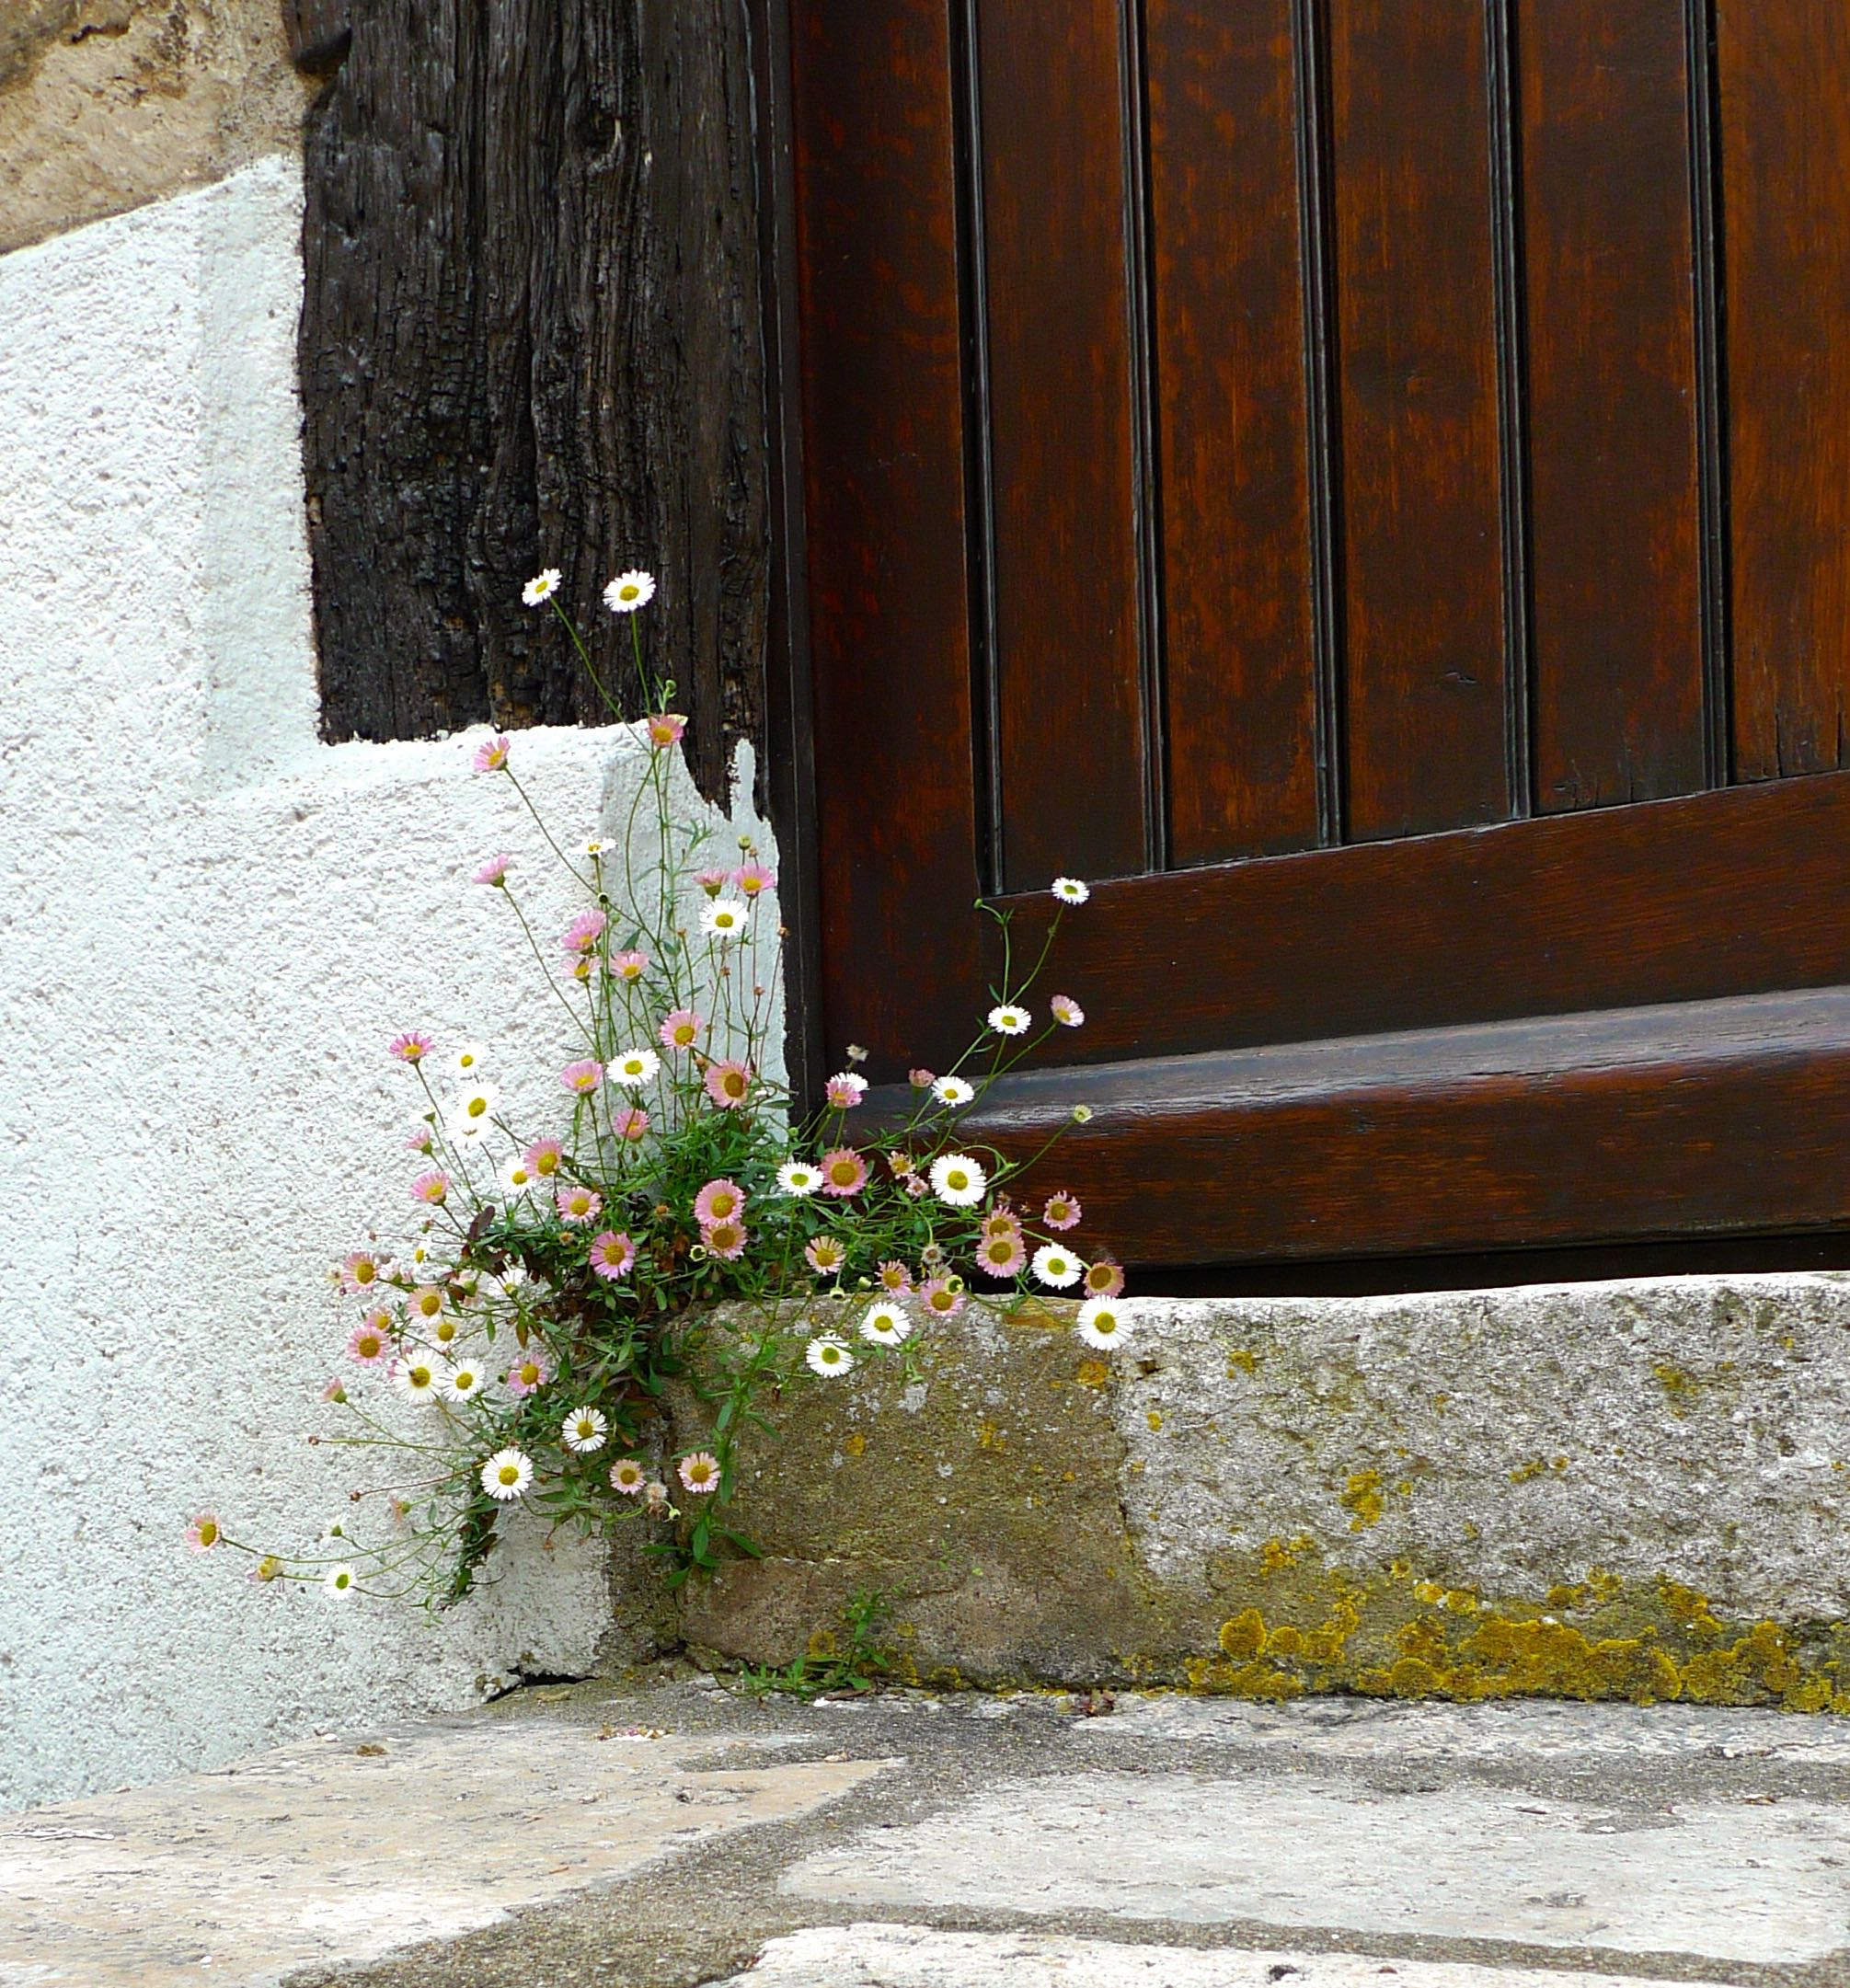 Flowers growing on the doorstep